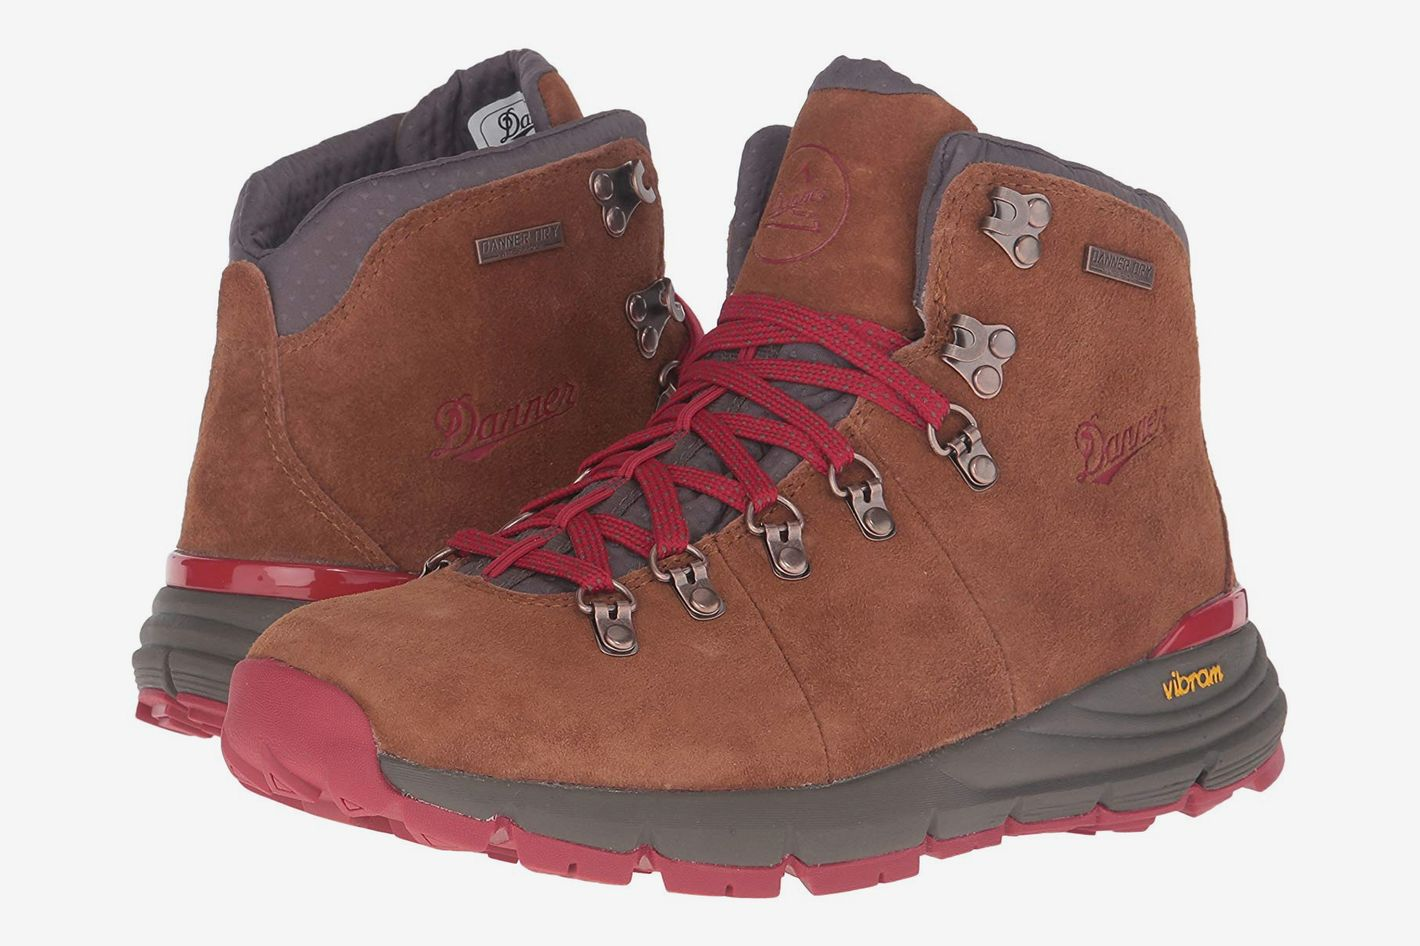 "Danner Women's Mountain 600 4.5"" Hiking Boot"